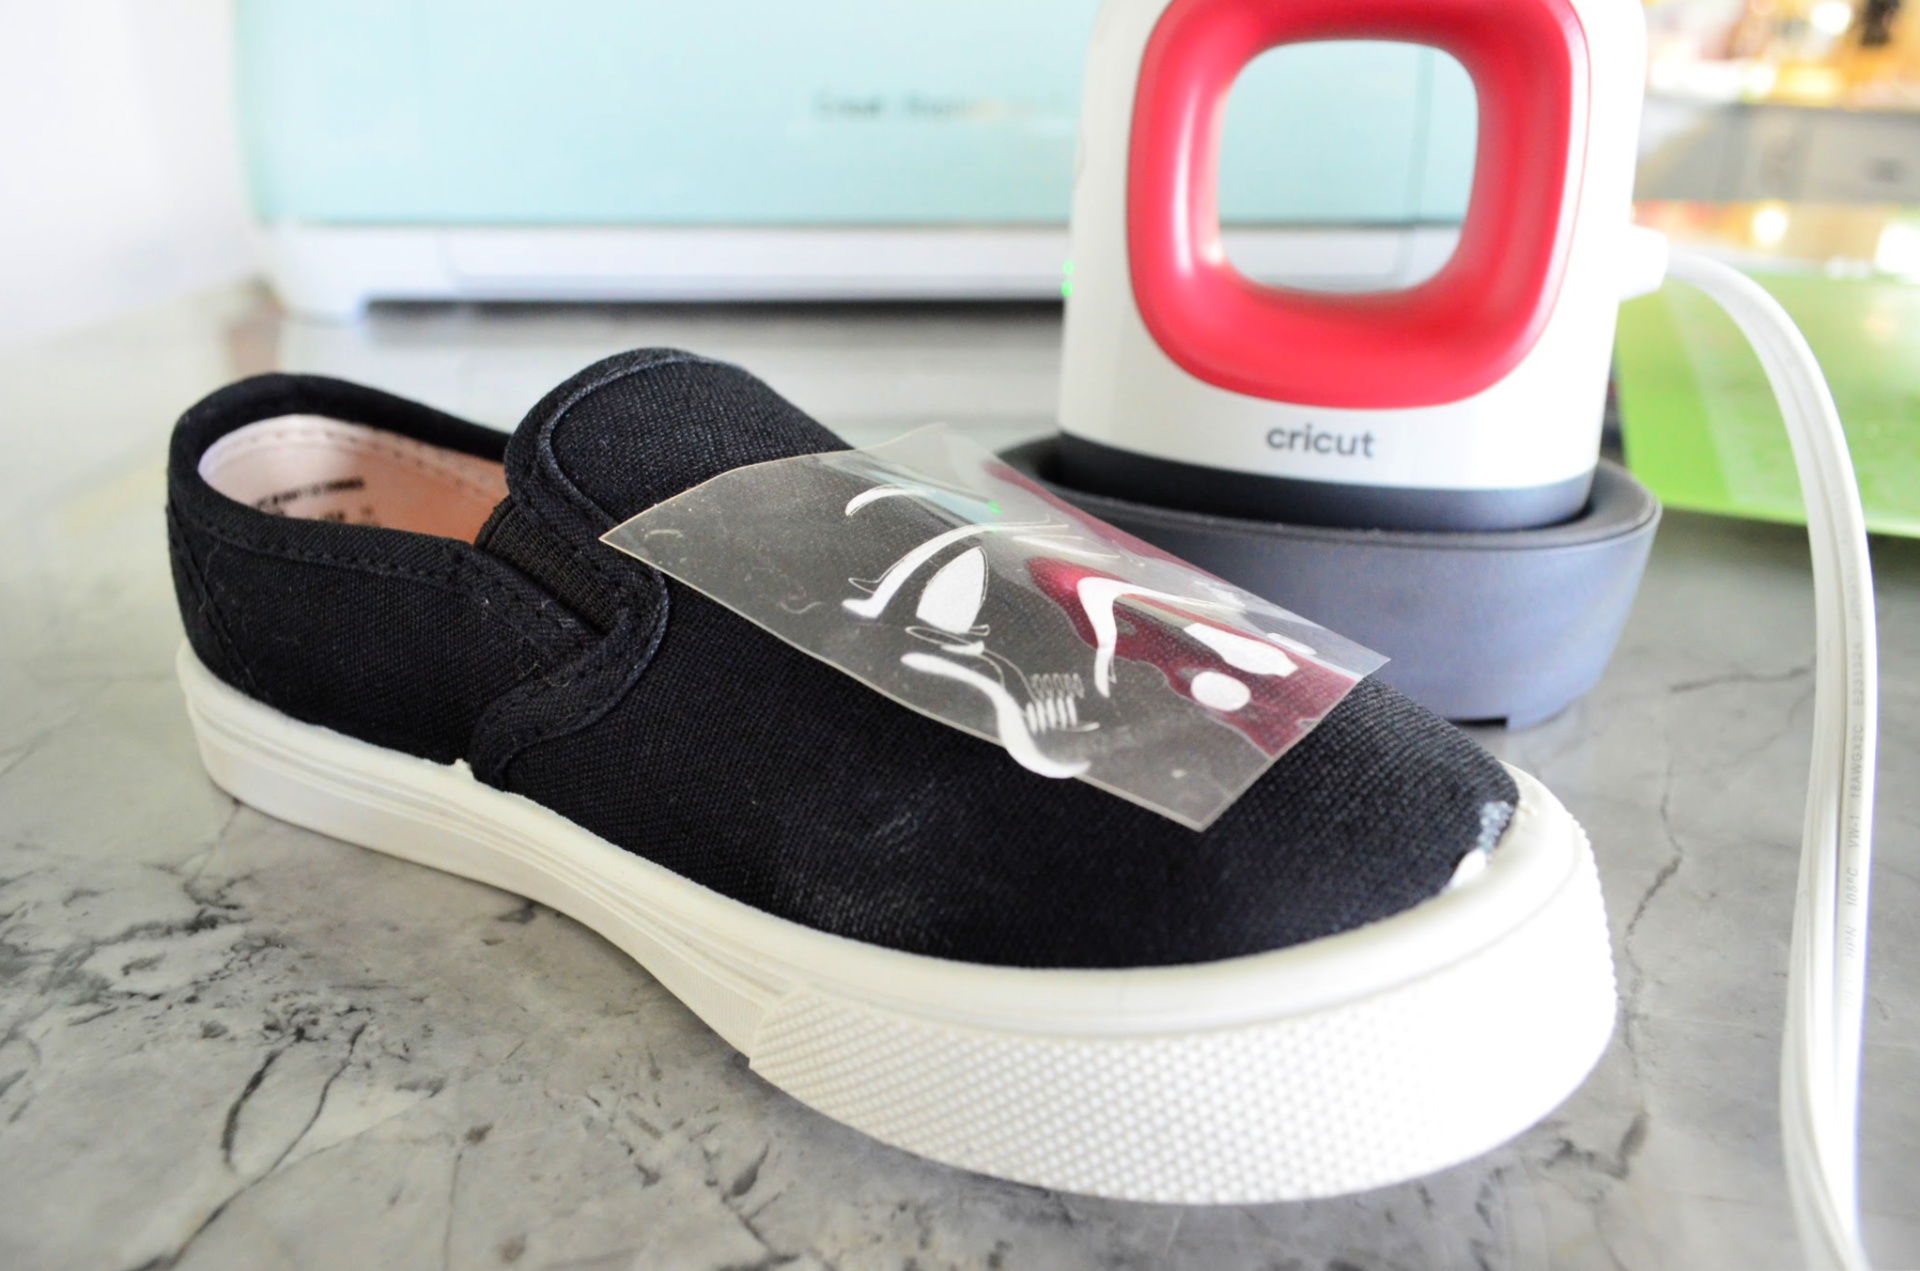 DIY Stormtrooper Shoes with Cricut Iron On Vinyl